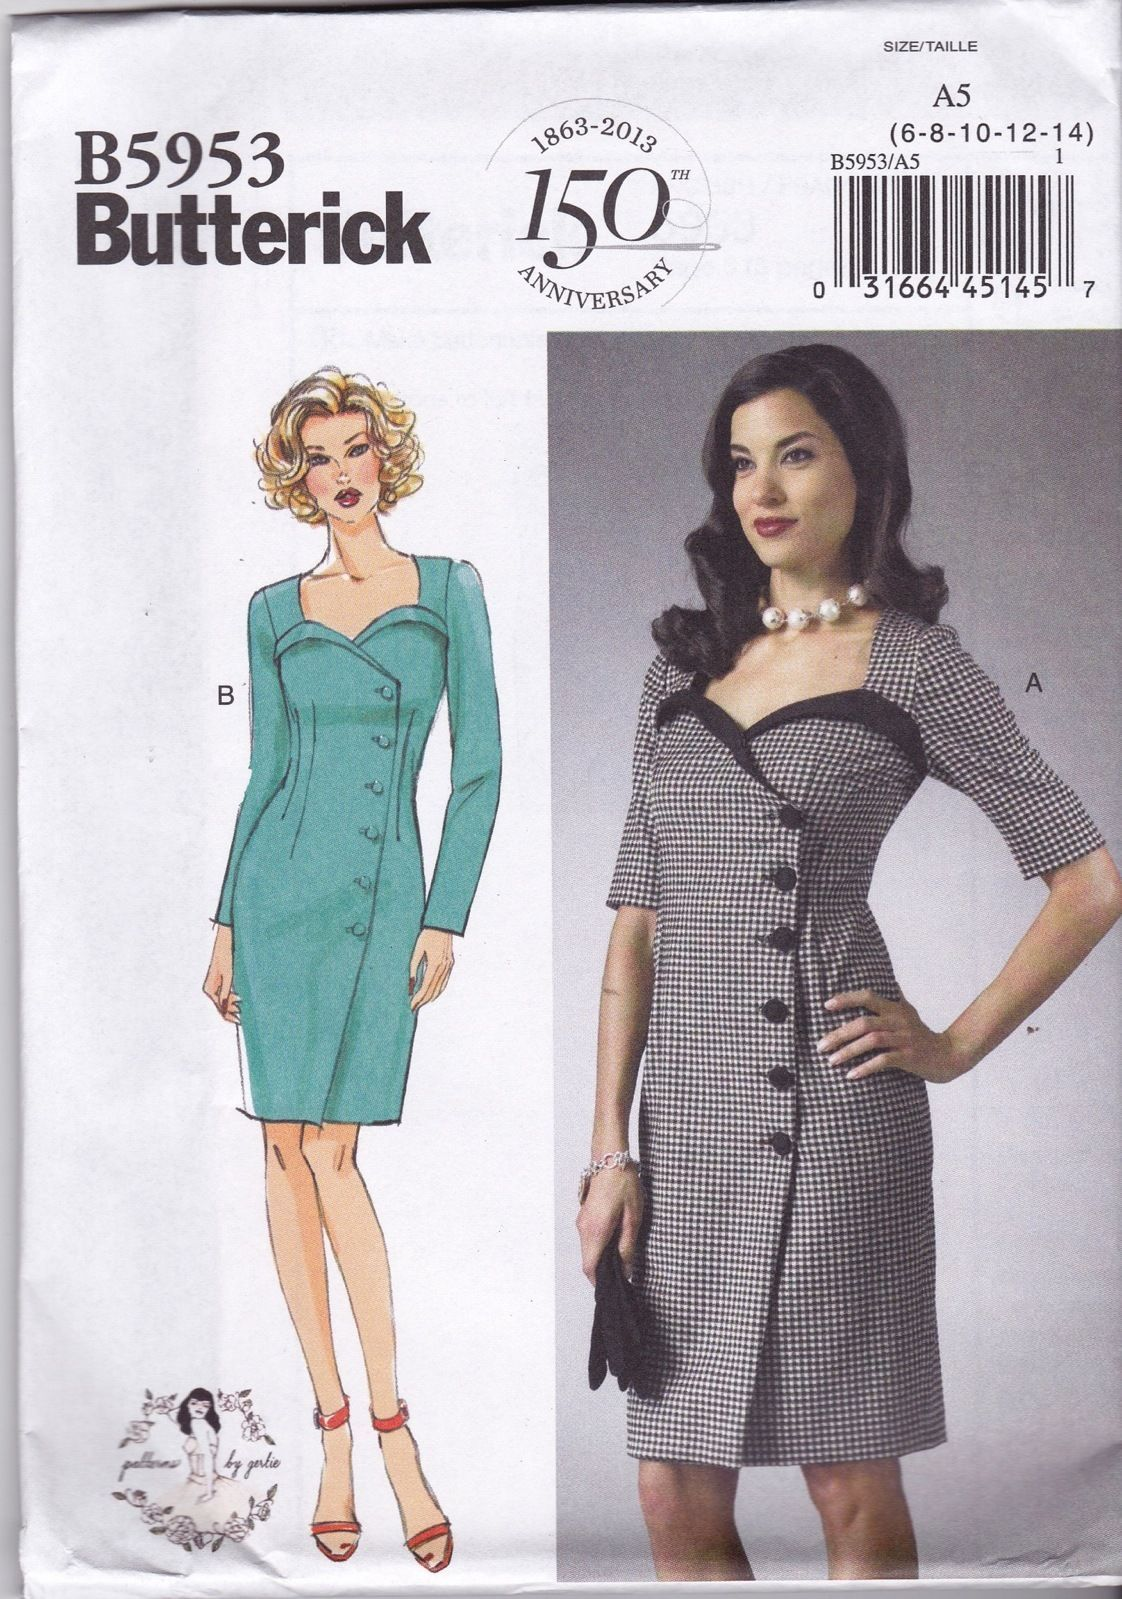 Butterick very easy sewing pattern misses fitted wrap dress sizes butterick very easy sewing pattern misses fitted wrap dress sizes 8 22 b5953 jeuxipadfo Choice Image